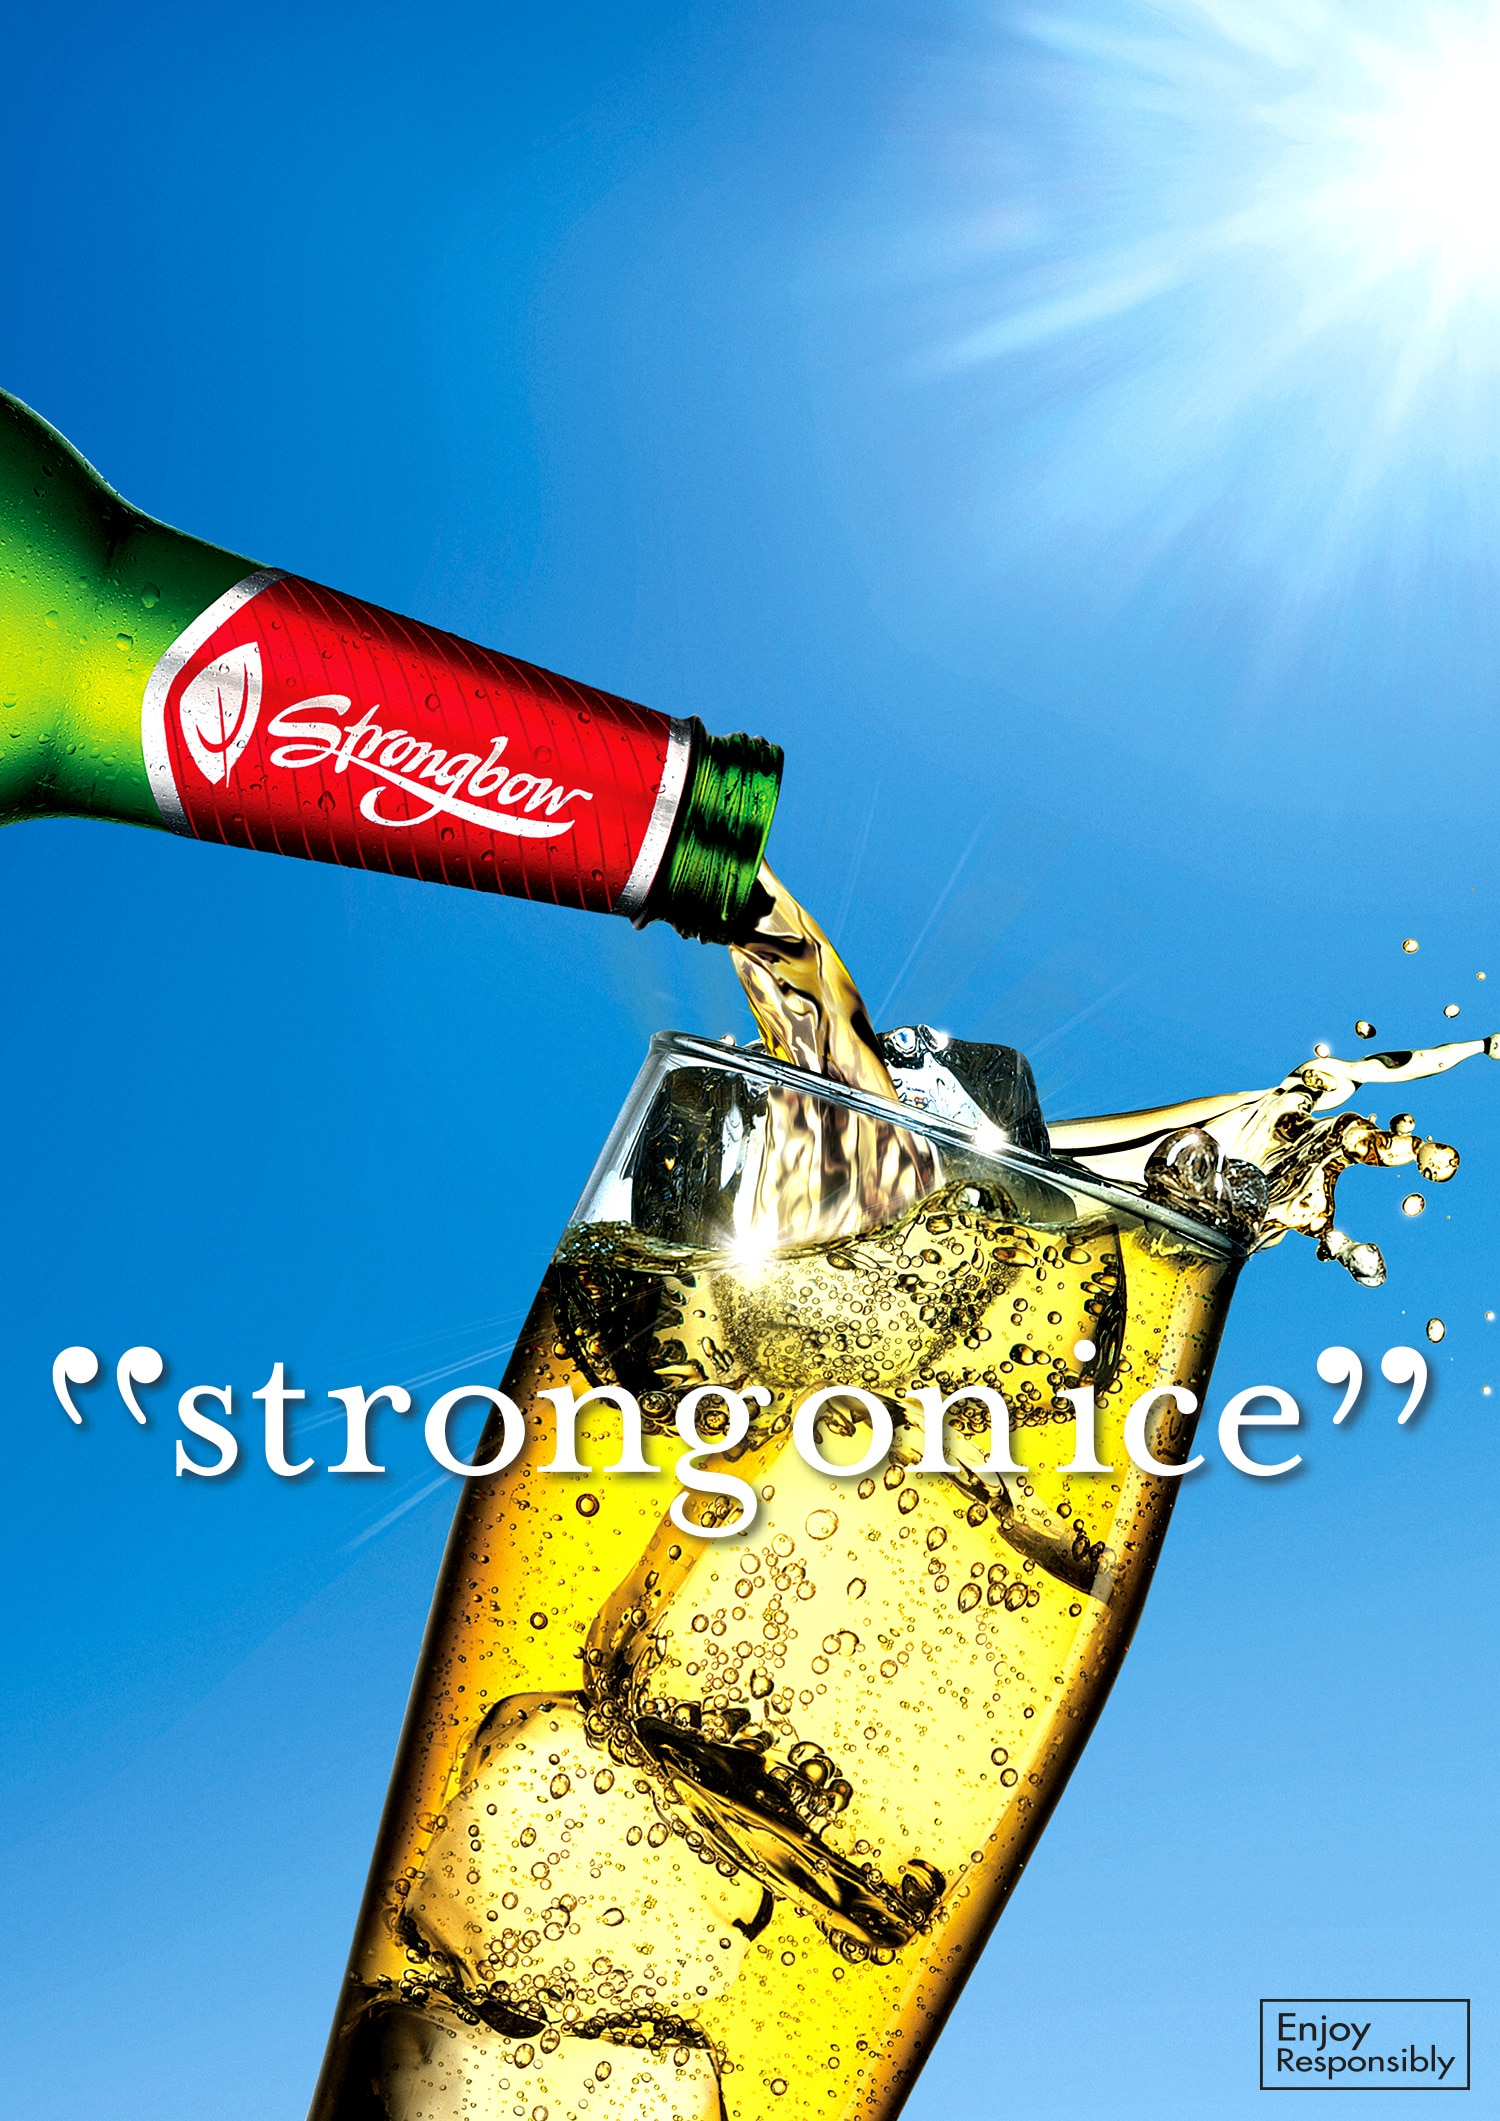 Strongbow: Strong on Ice - Is a print and outdoor campaign designed to encourage Australians to change the way they drink cider. I was responsible for the art direction on this project.